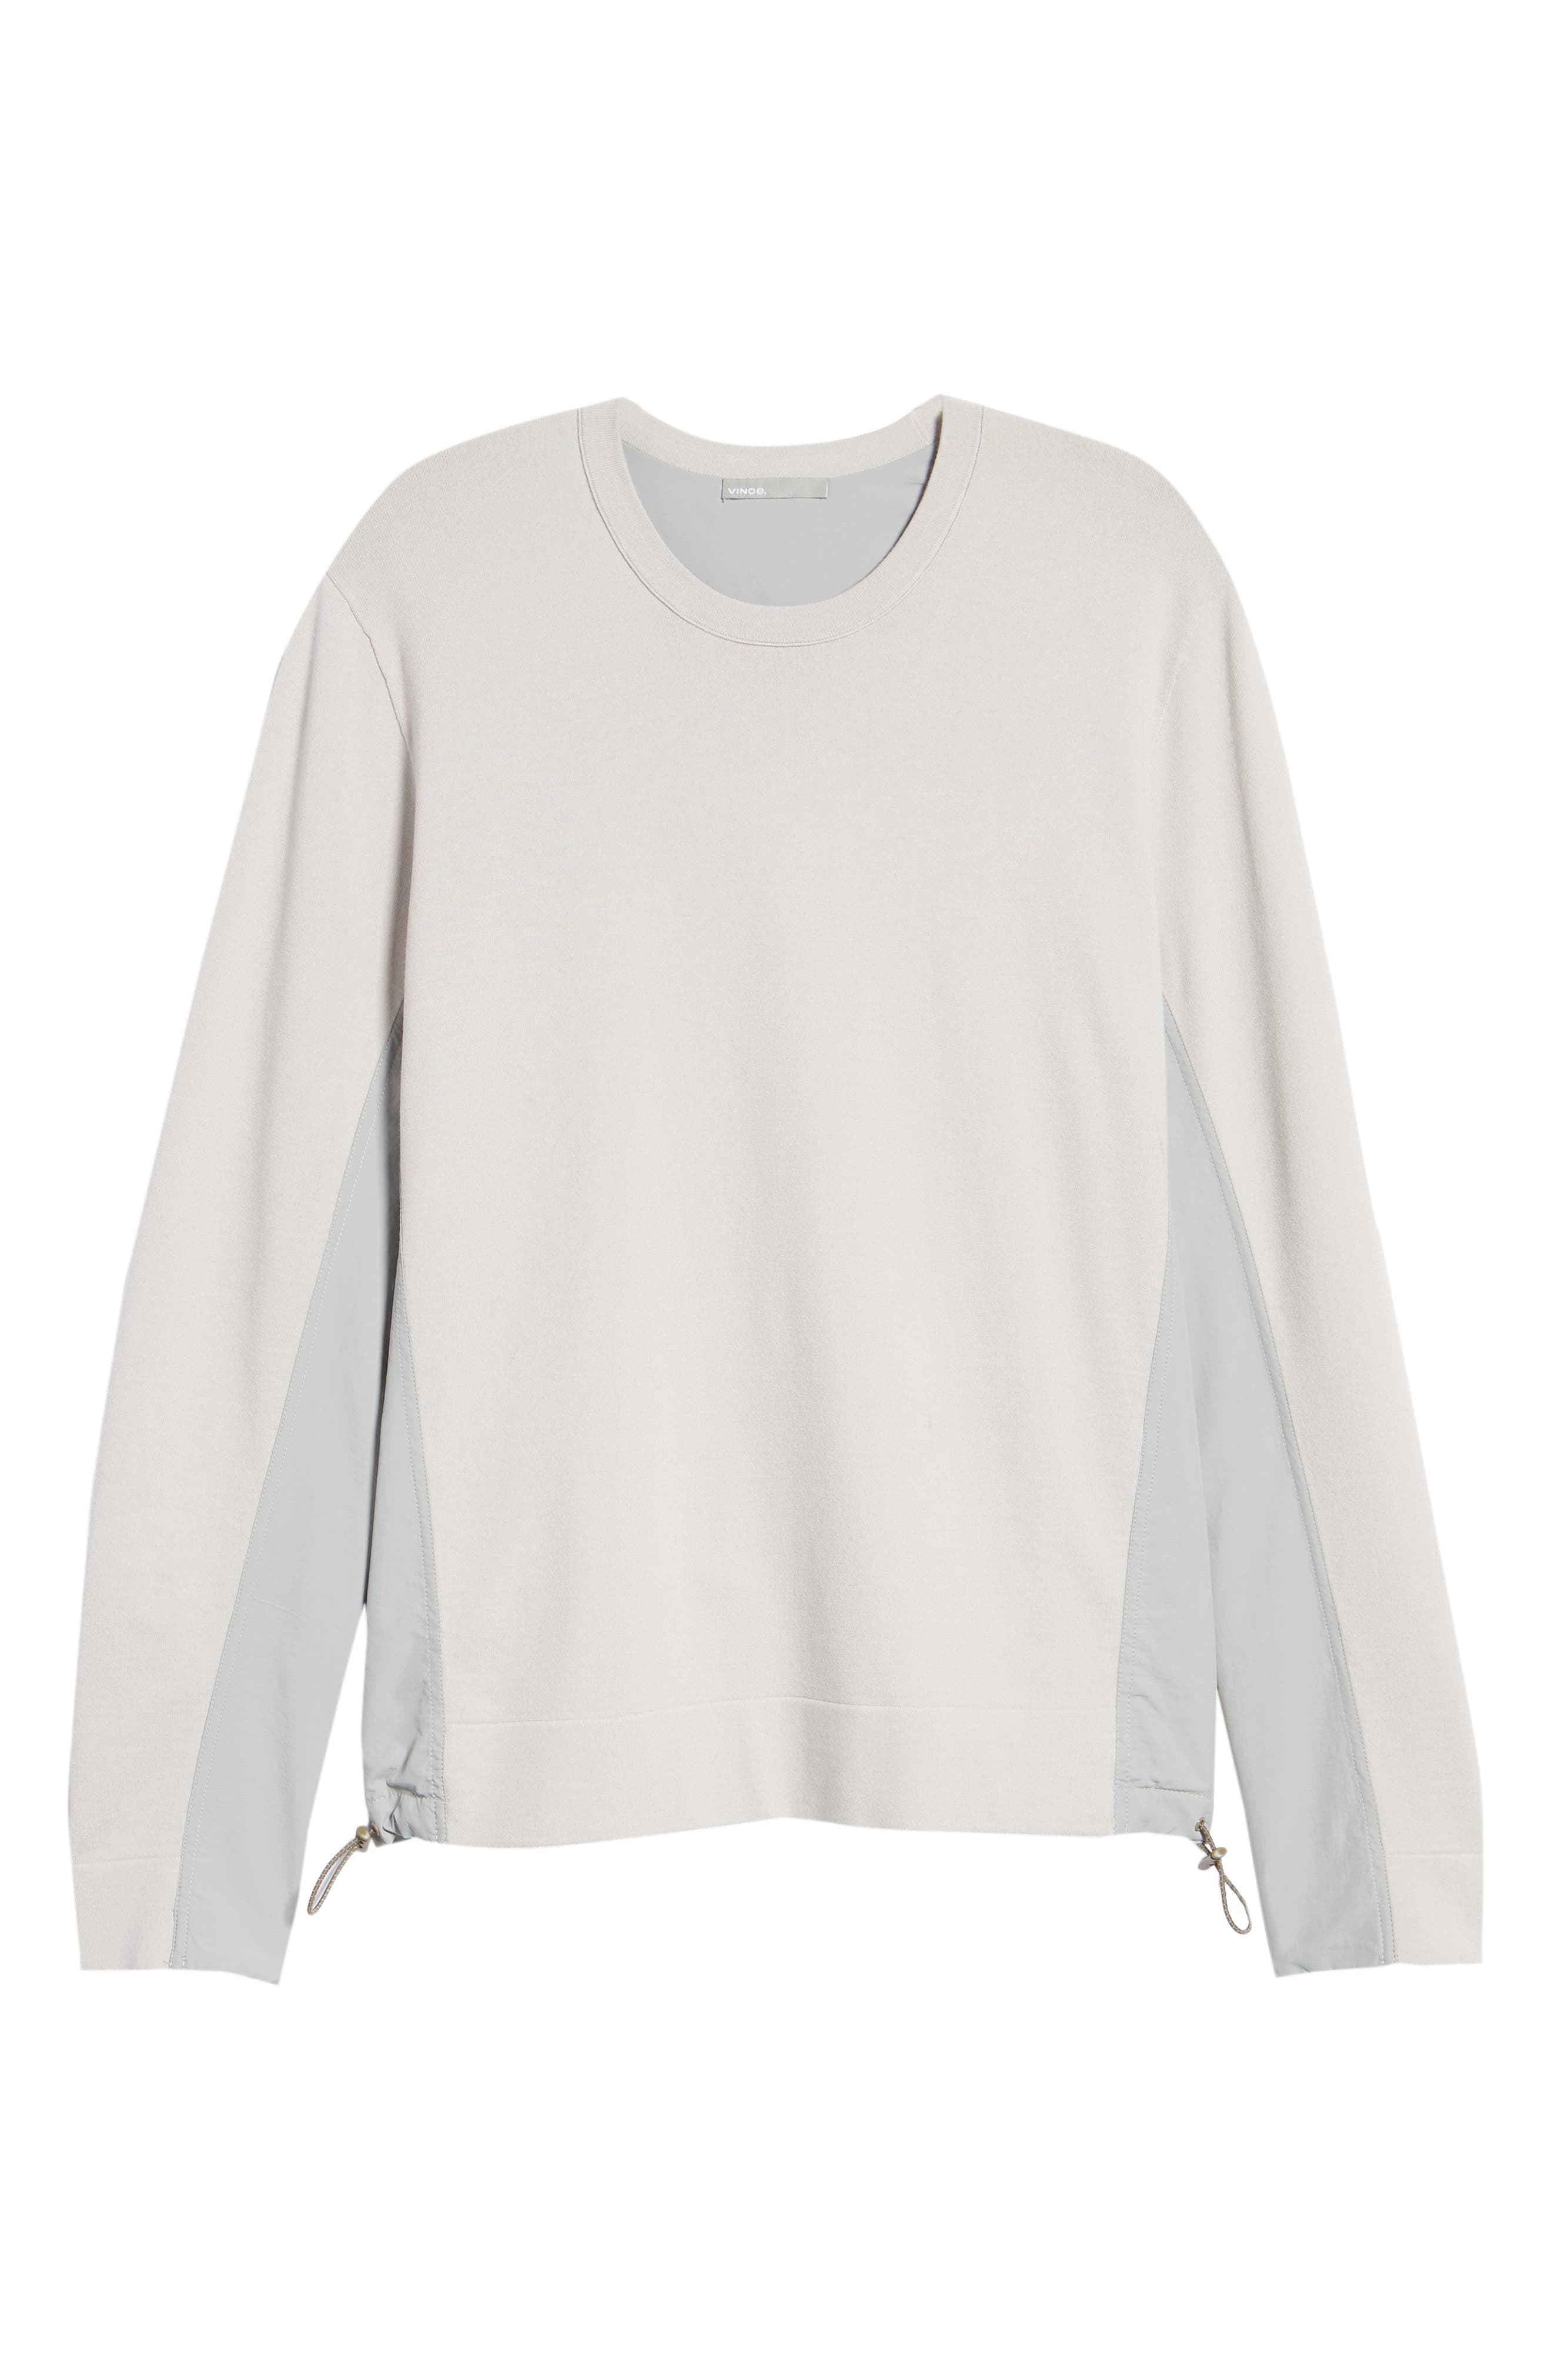 Crewneck Sweatshirt,                             Alternate thumbnail 6, color,                             Cloud